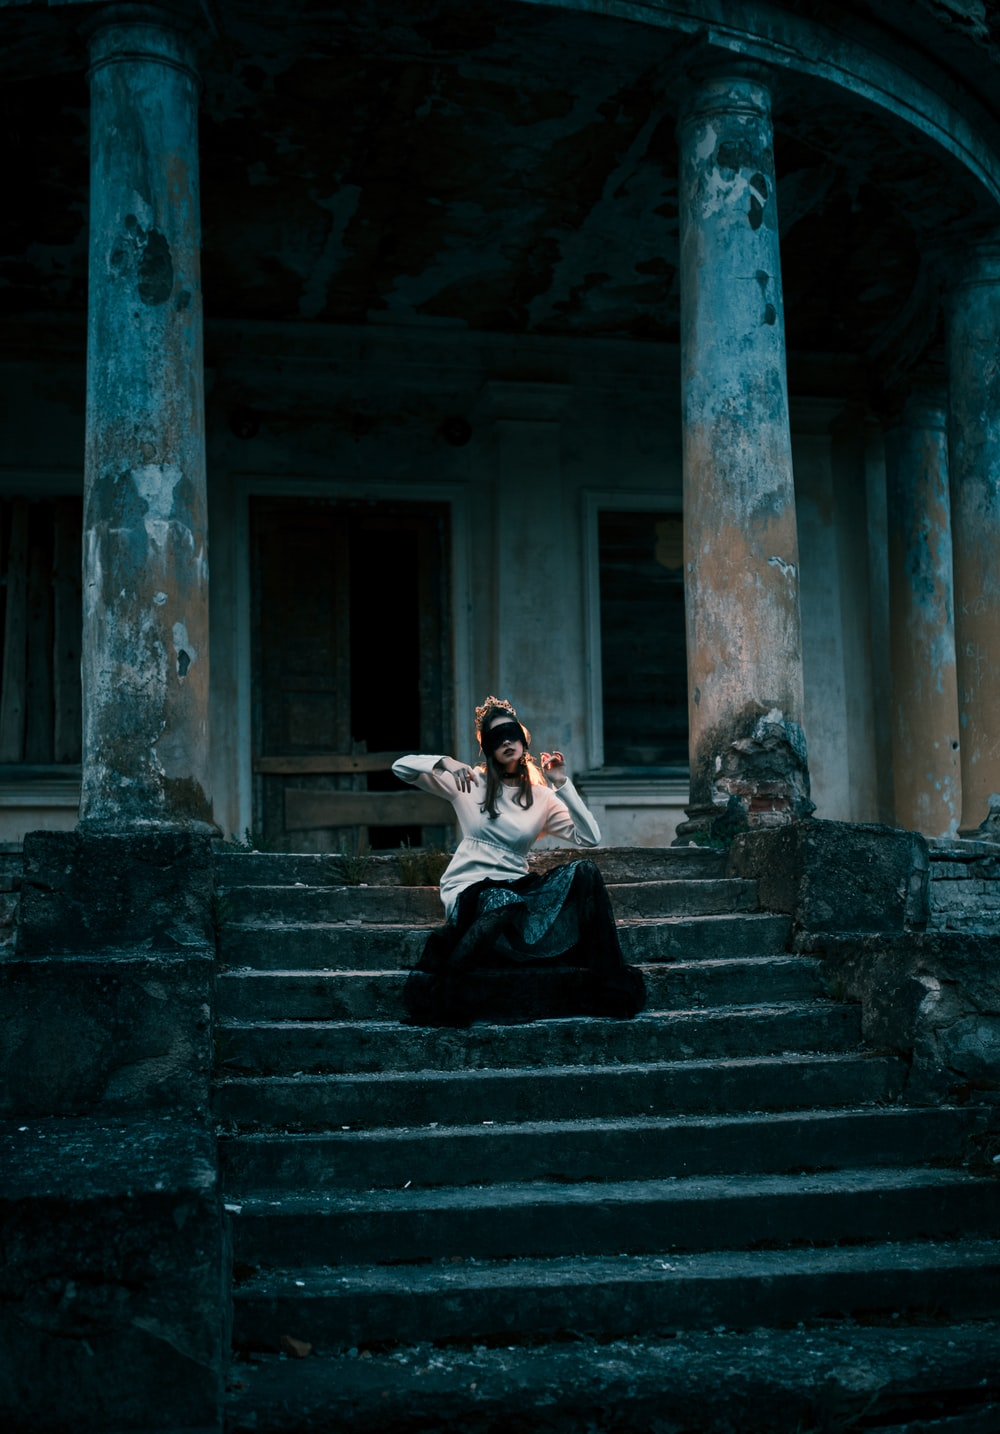 woman in black dress sitting on stairs